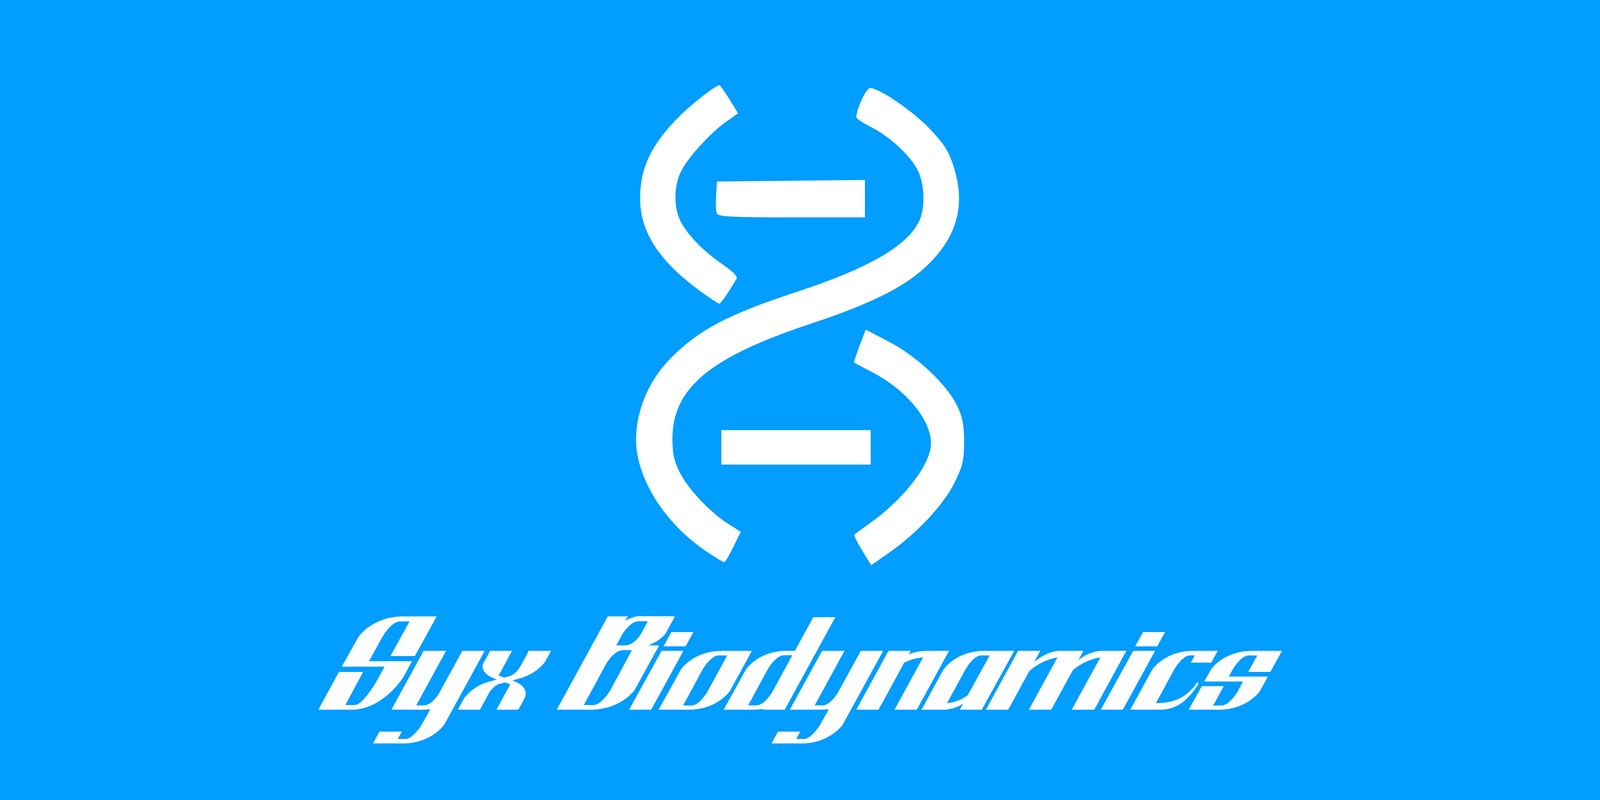 Syx Biodynamics by achaley